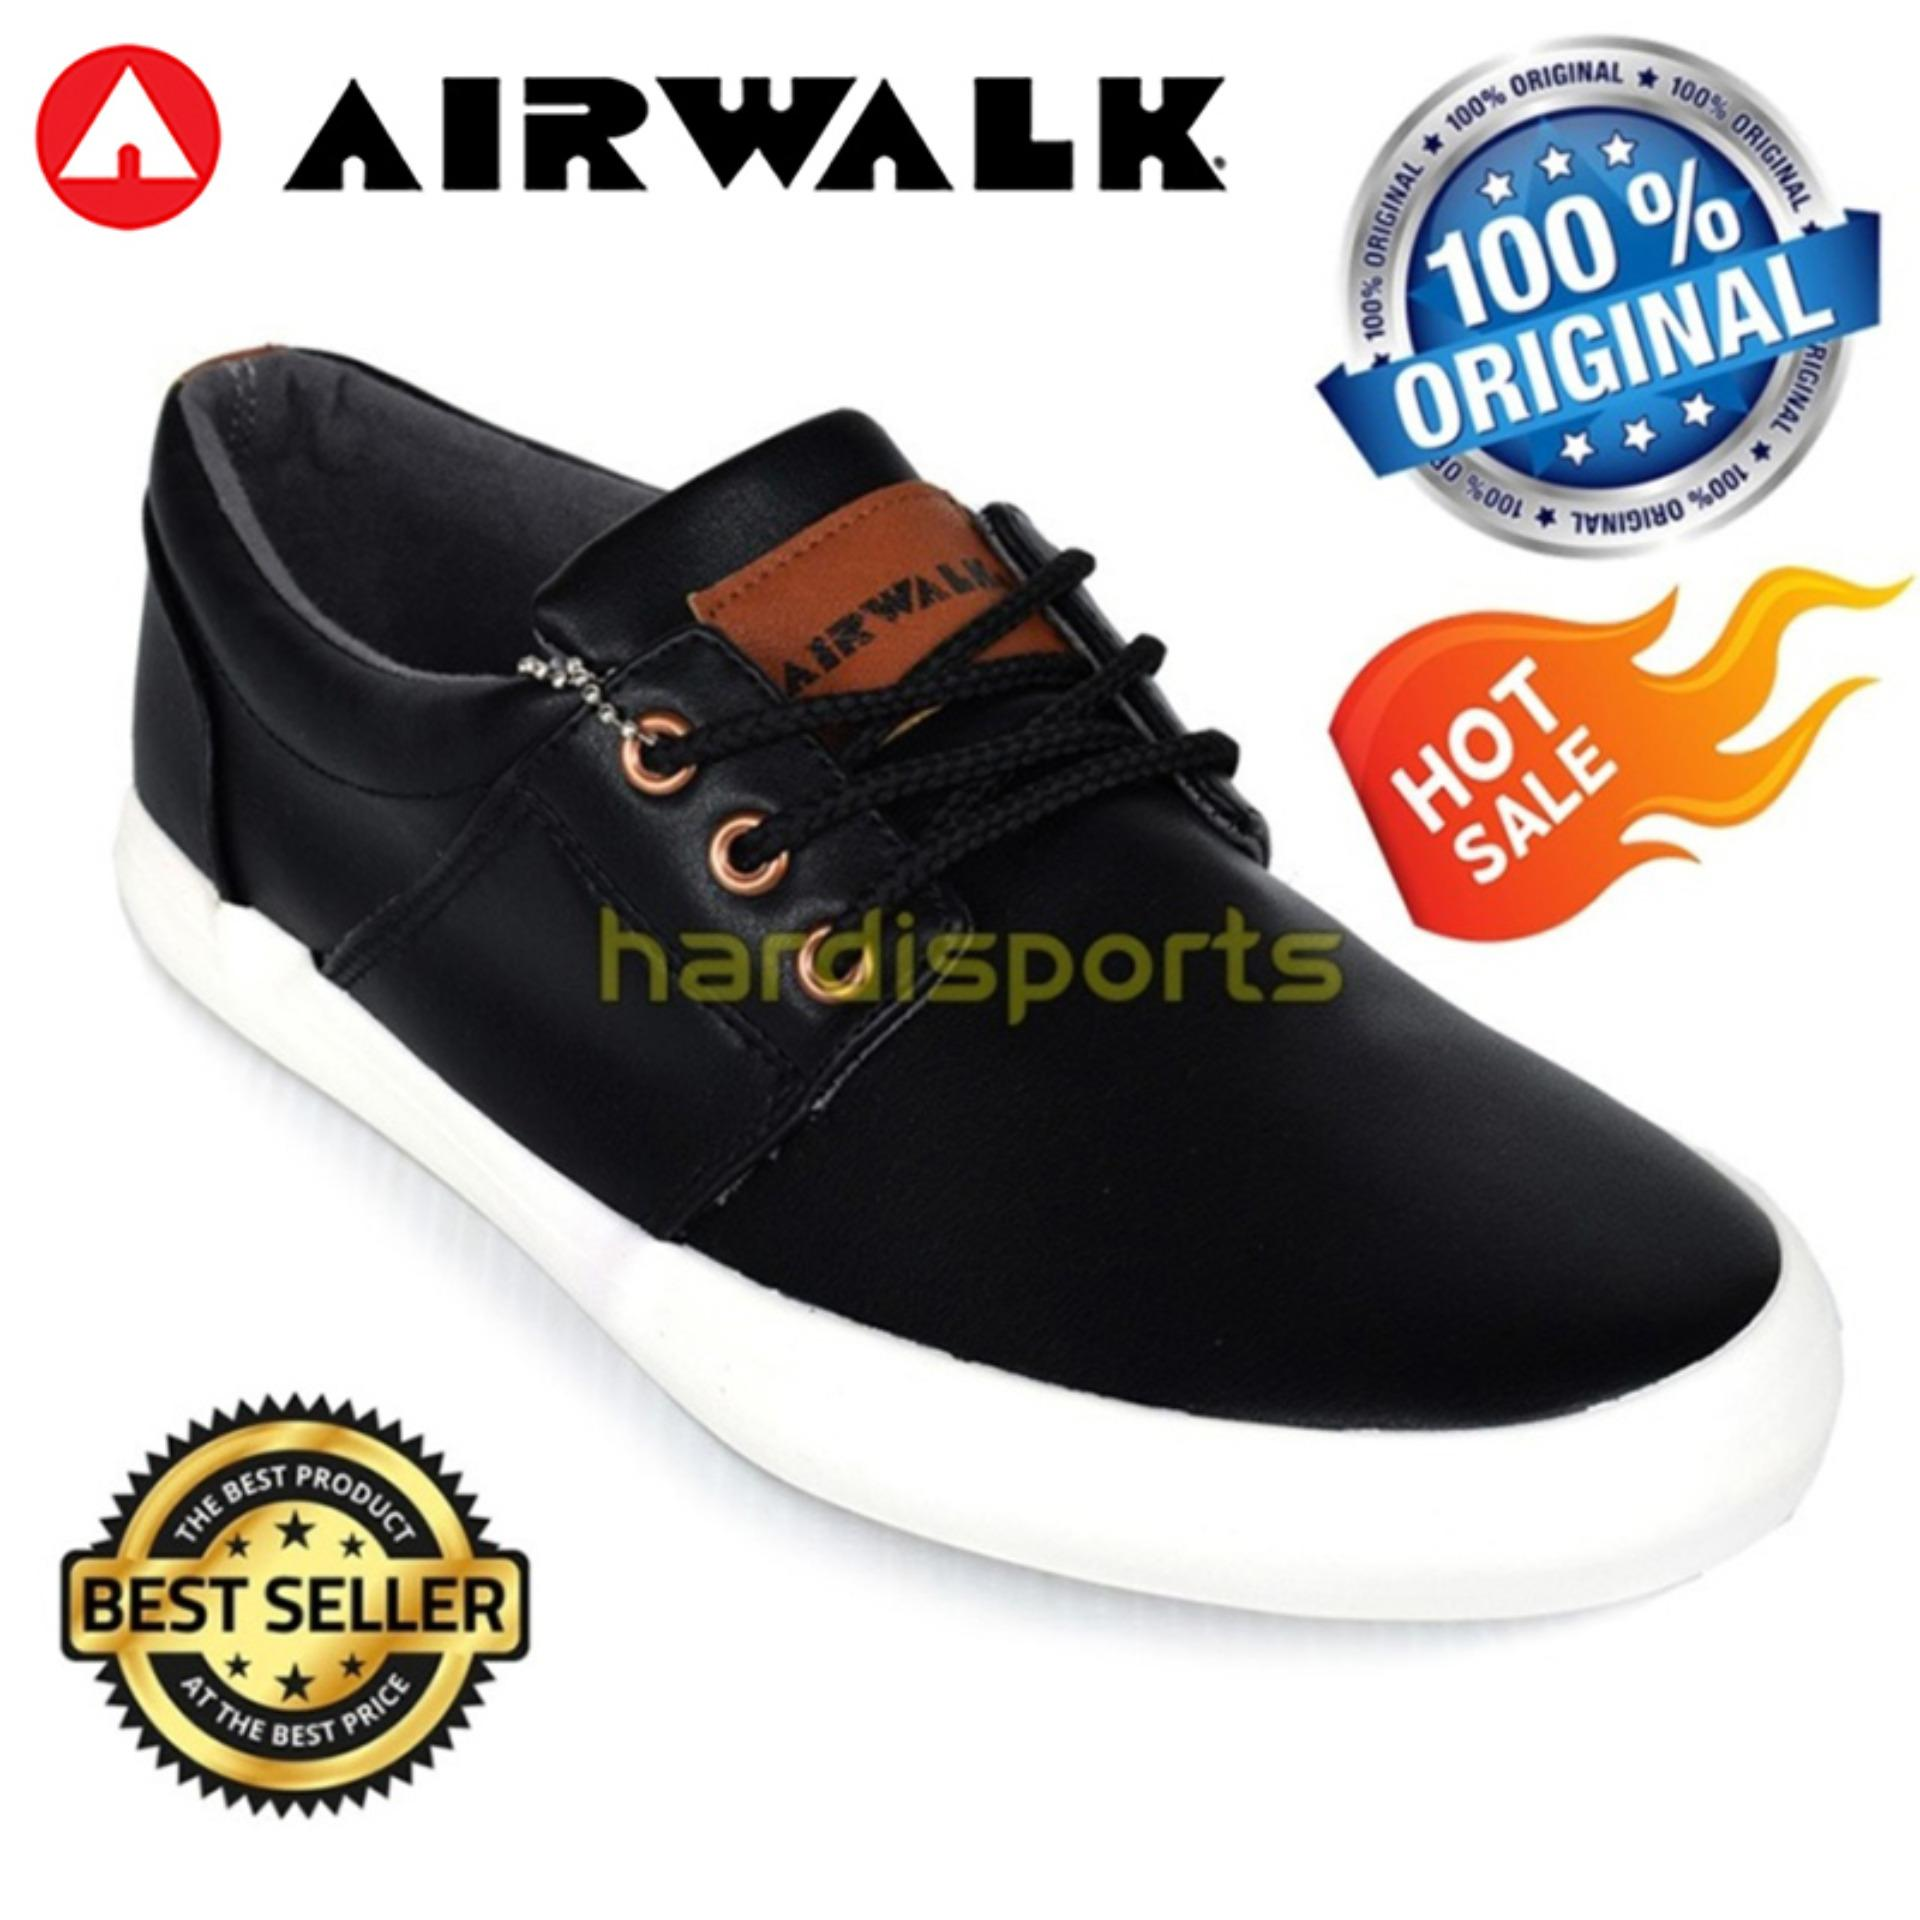 Beli Airwalk Hans Aiw16Pvm2010 Black Airwalk Murah